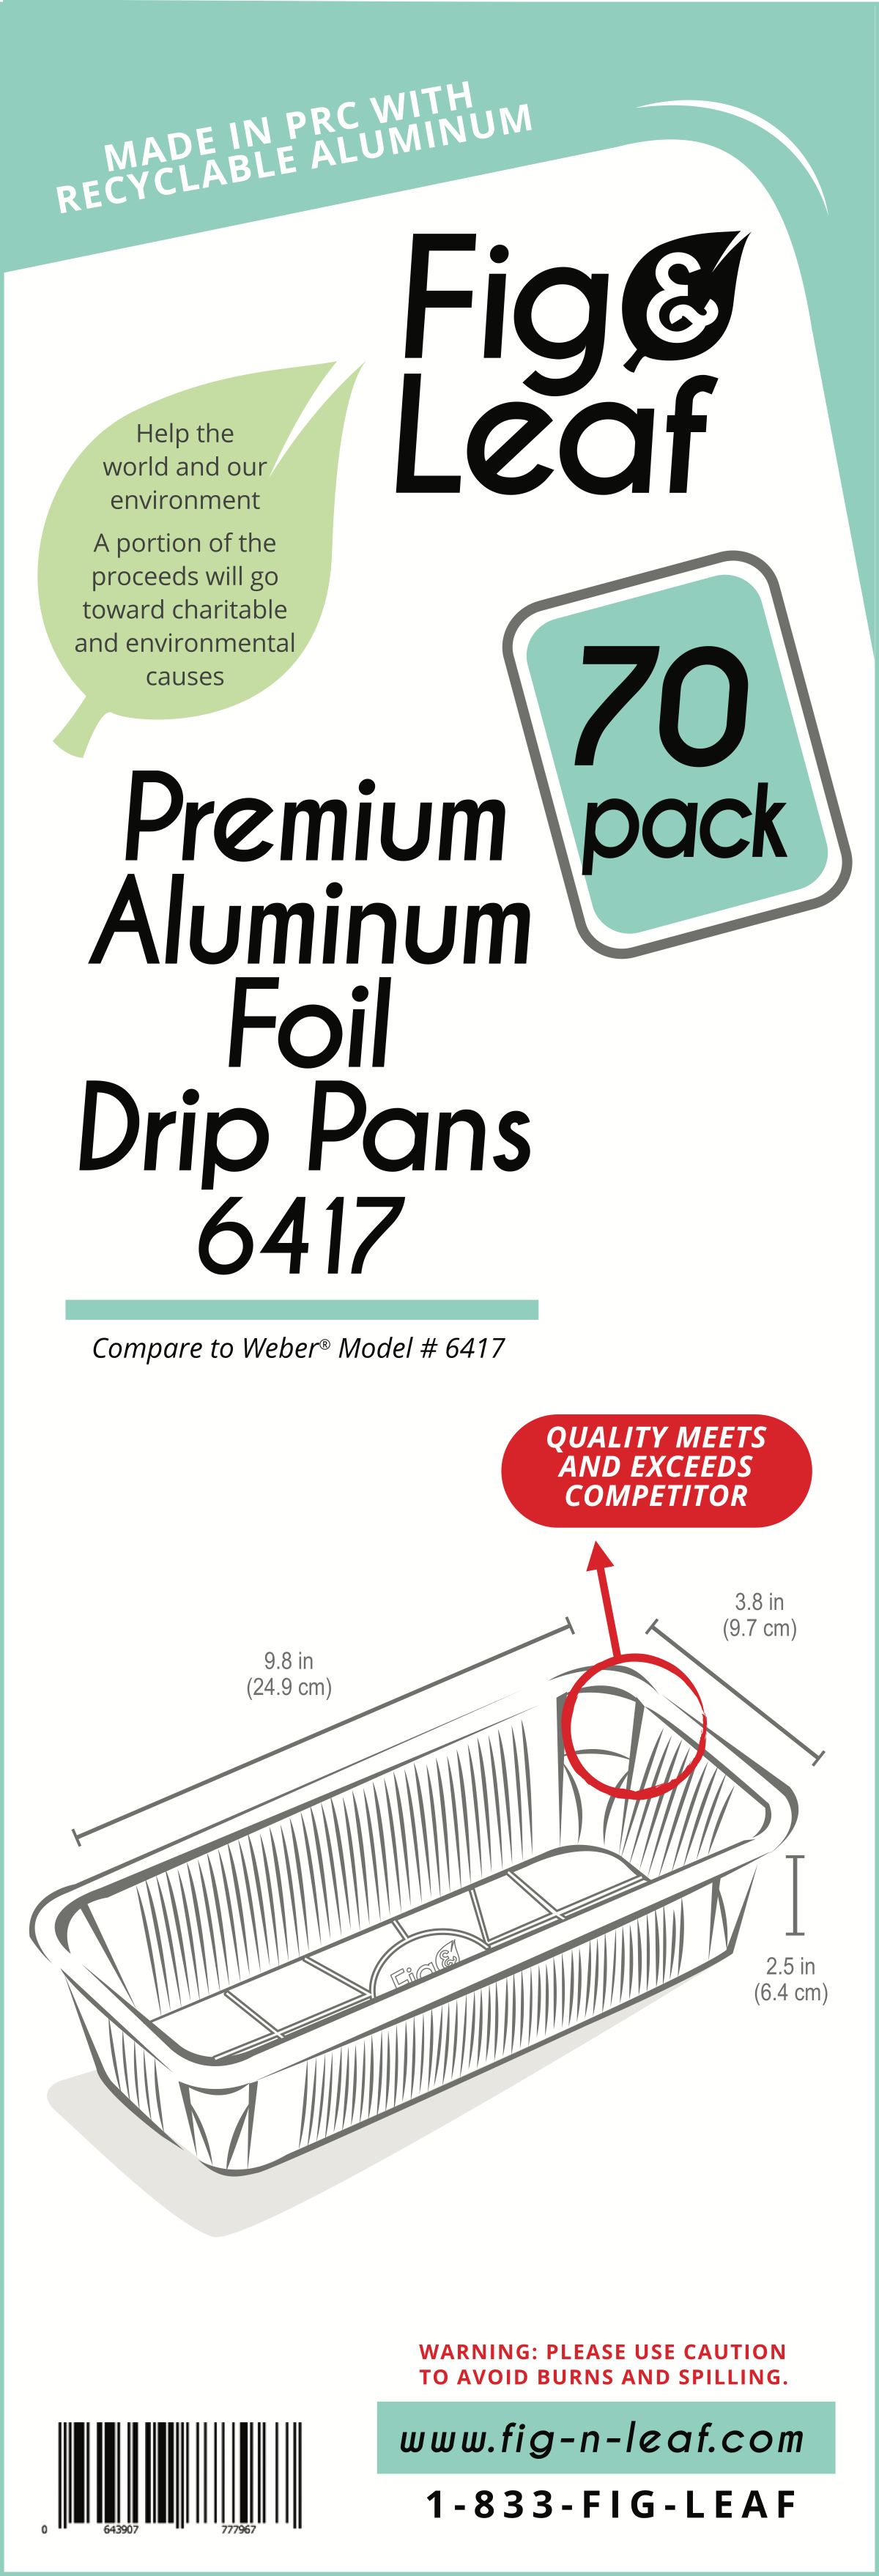 Label for foil pans